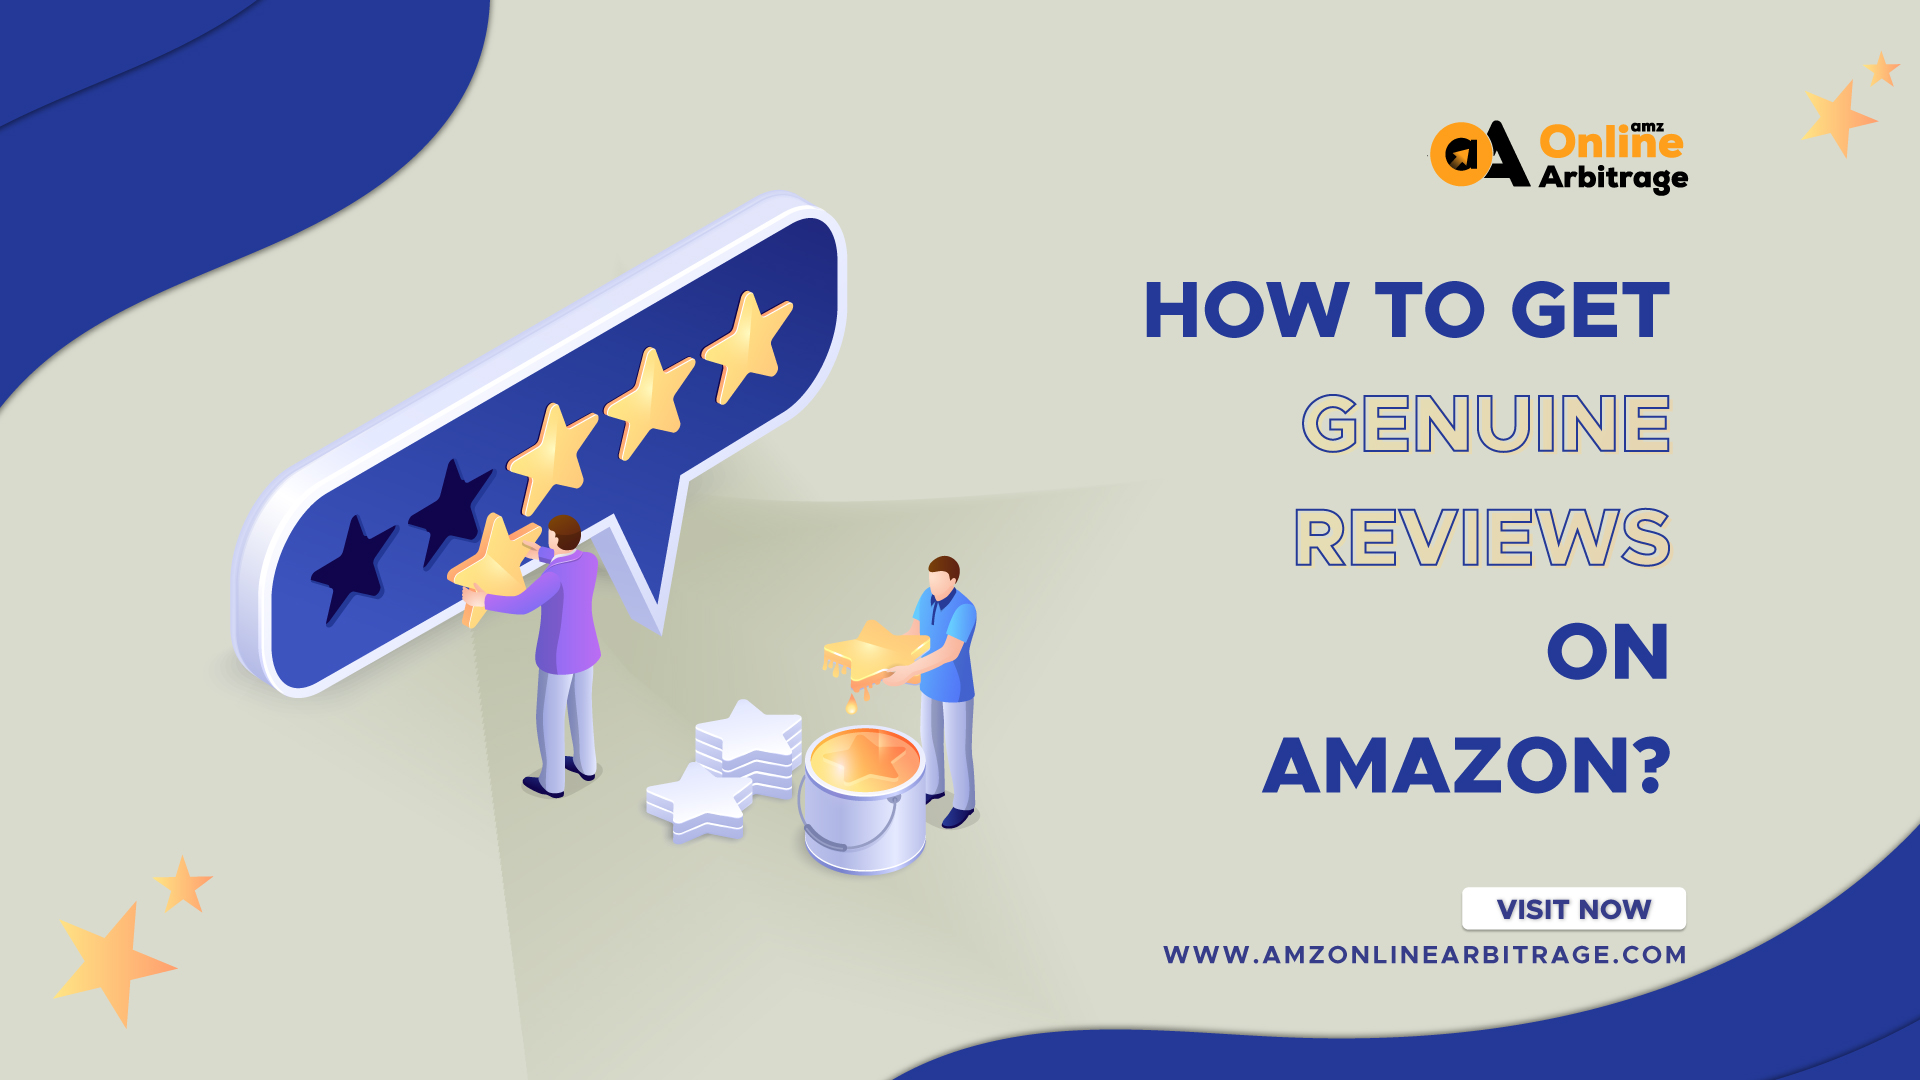 HOW TO GET GENUINE REVIEWS ON AMAZON?